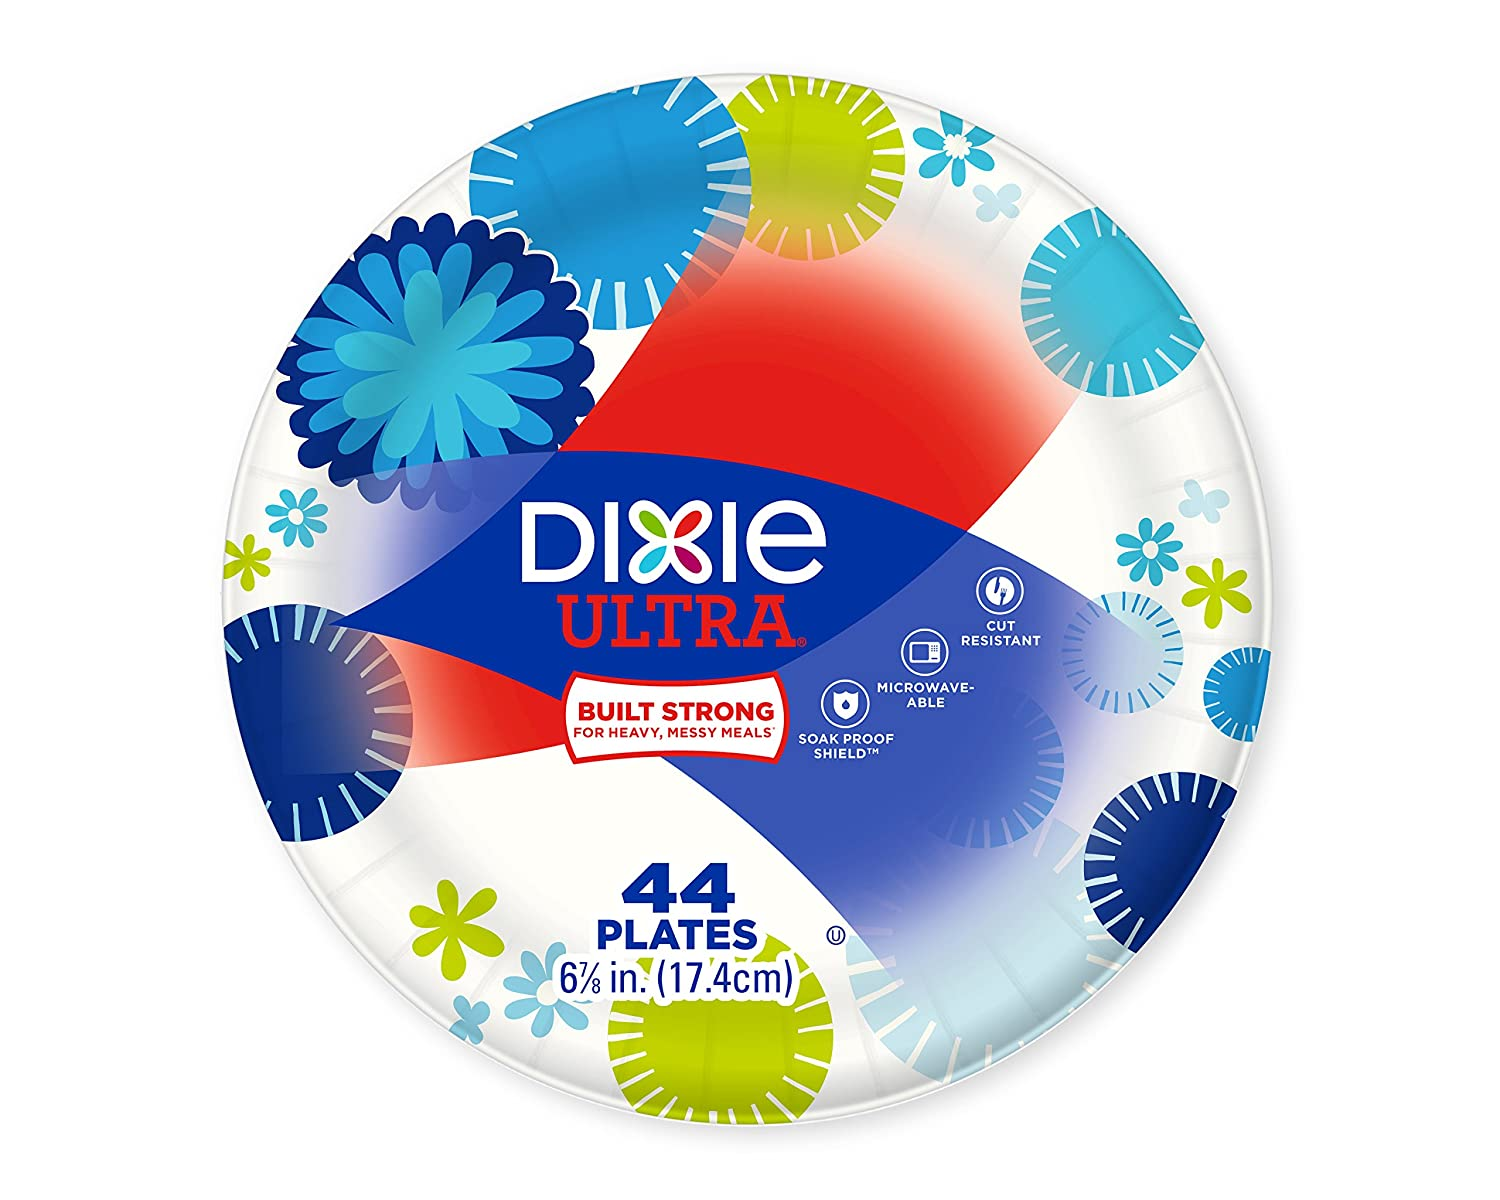 Amazon.com  Dixie Ultra Small Paper Plates 6 7/8 inch 44 Count Dessert Size Disposable Plates  Grocery \u0026 Gourmet Food  sc 1 st  Amazon.com & Amazon.com : Dixie Ultra Small Paper Plates 6 7/8 inch 44 Count ...